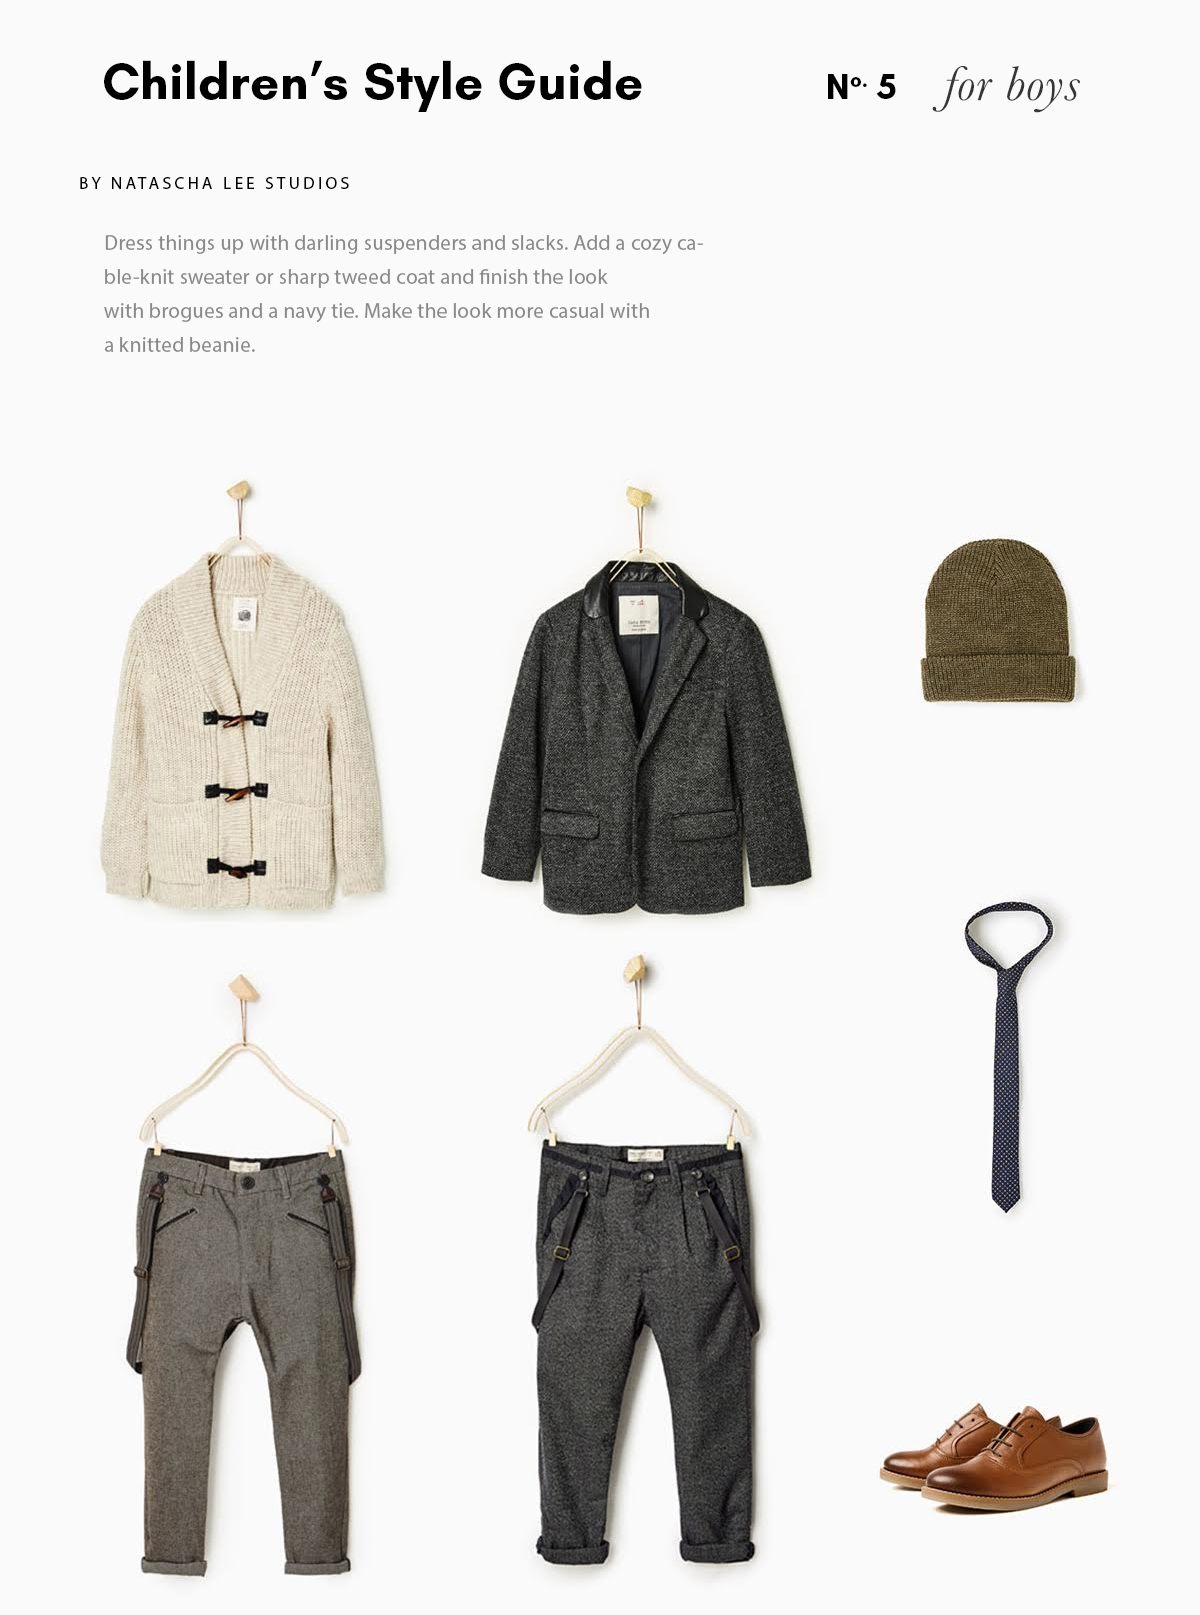 style-guide-no-5-for-boys